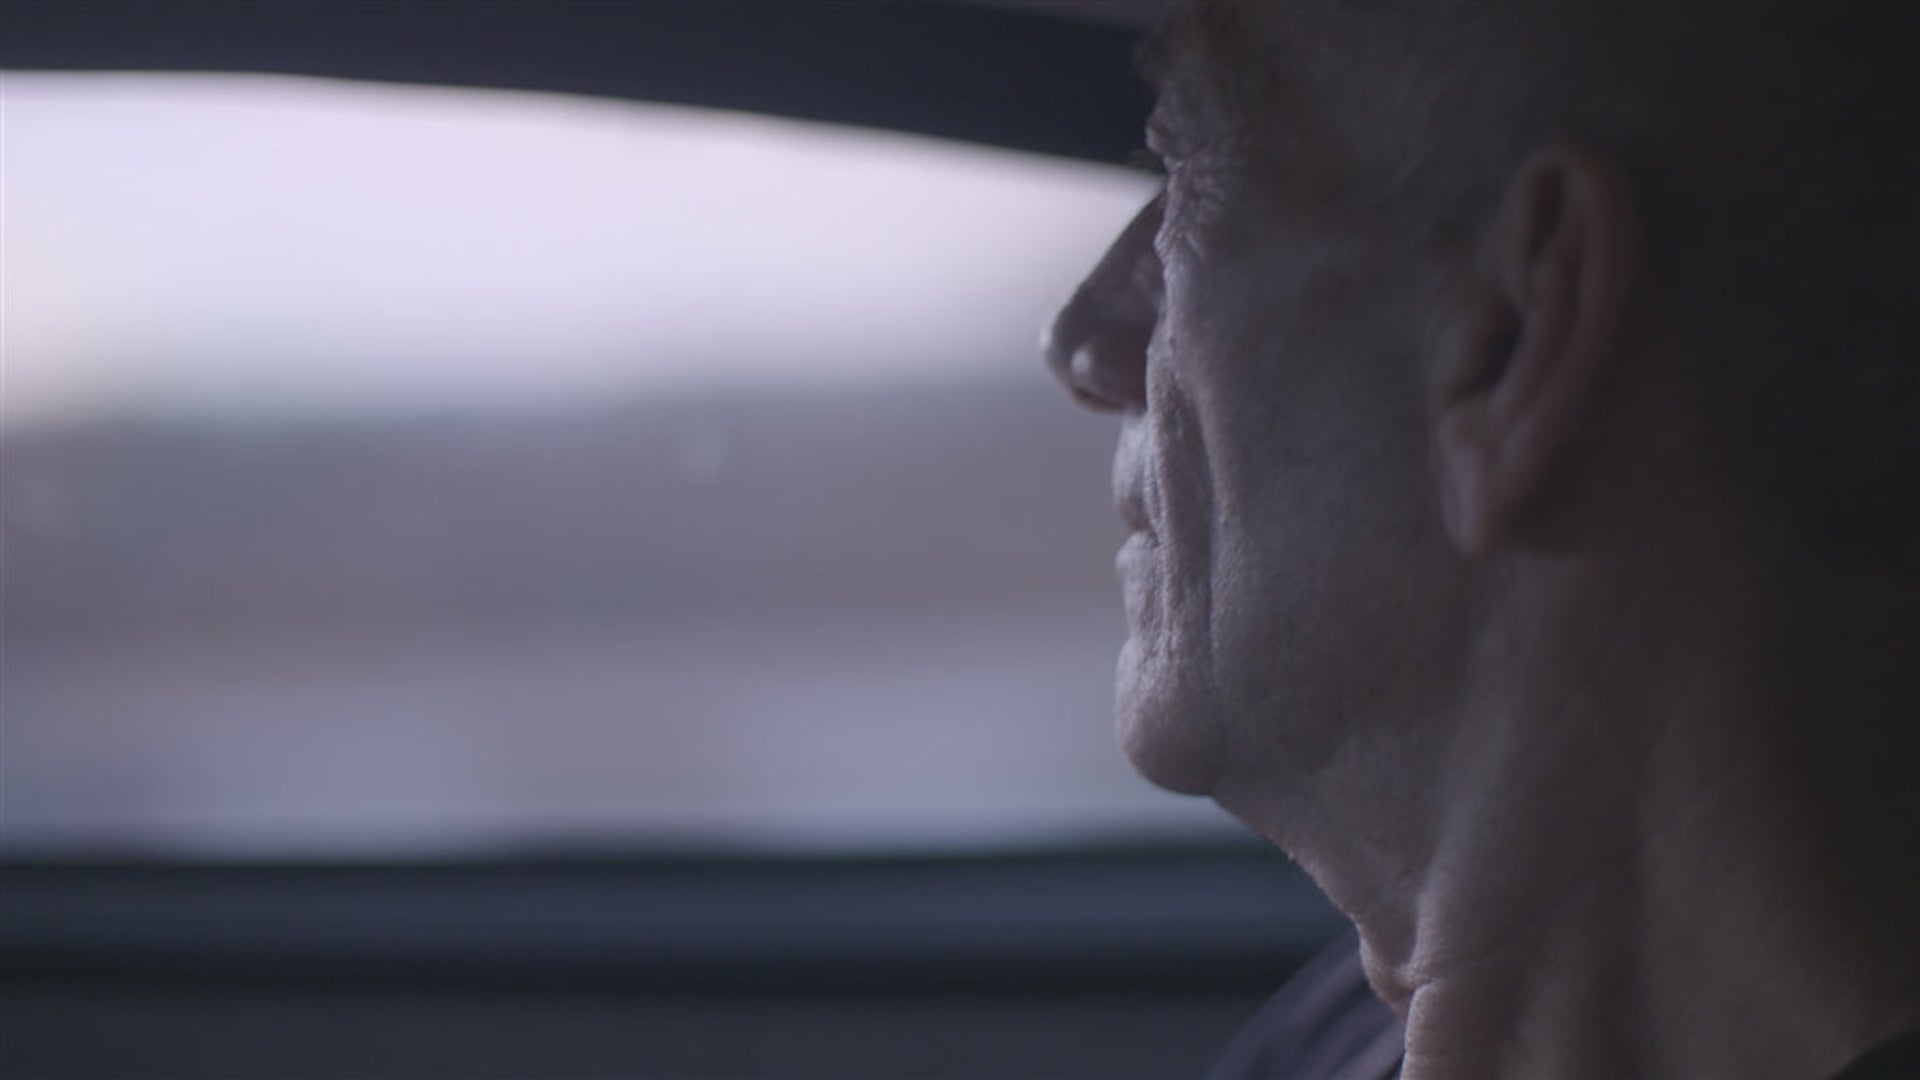 A shot from the new film on former Israeli Prime Minister Ehud Olmert.